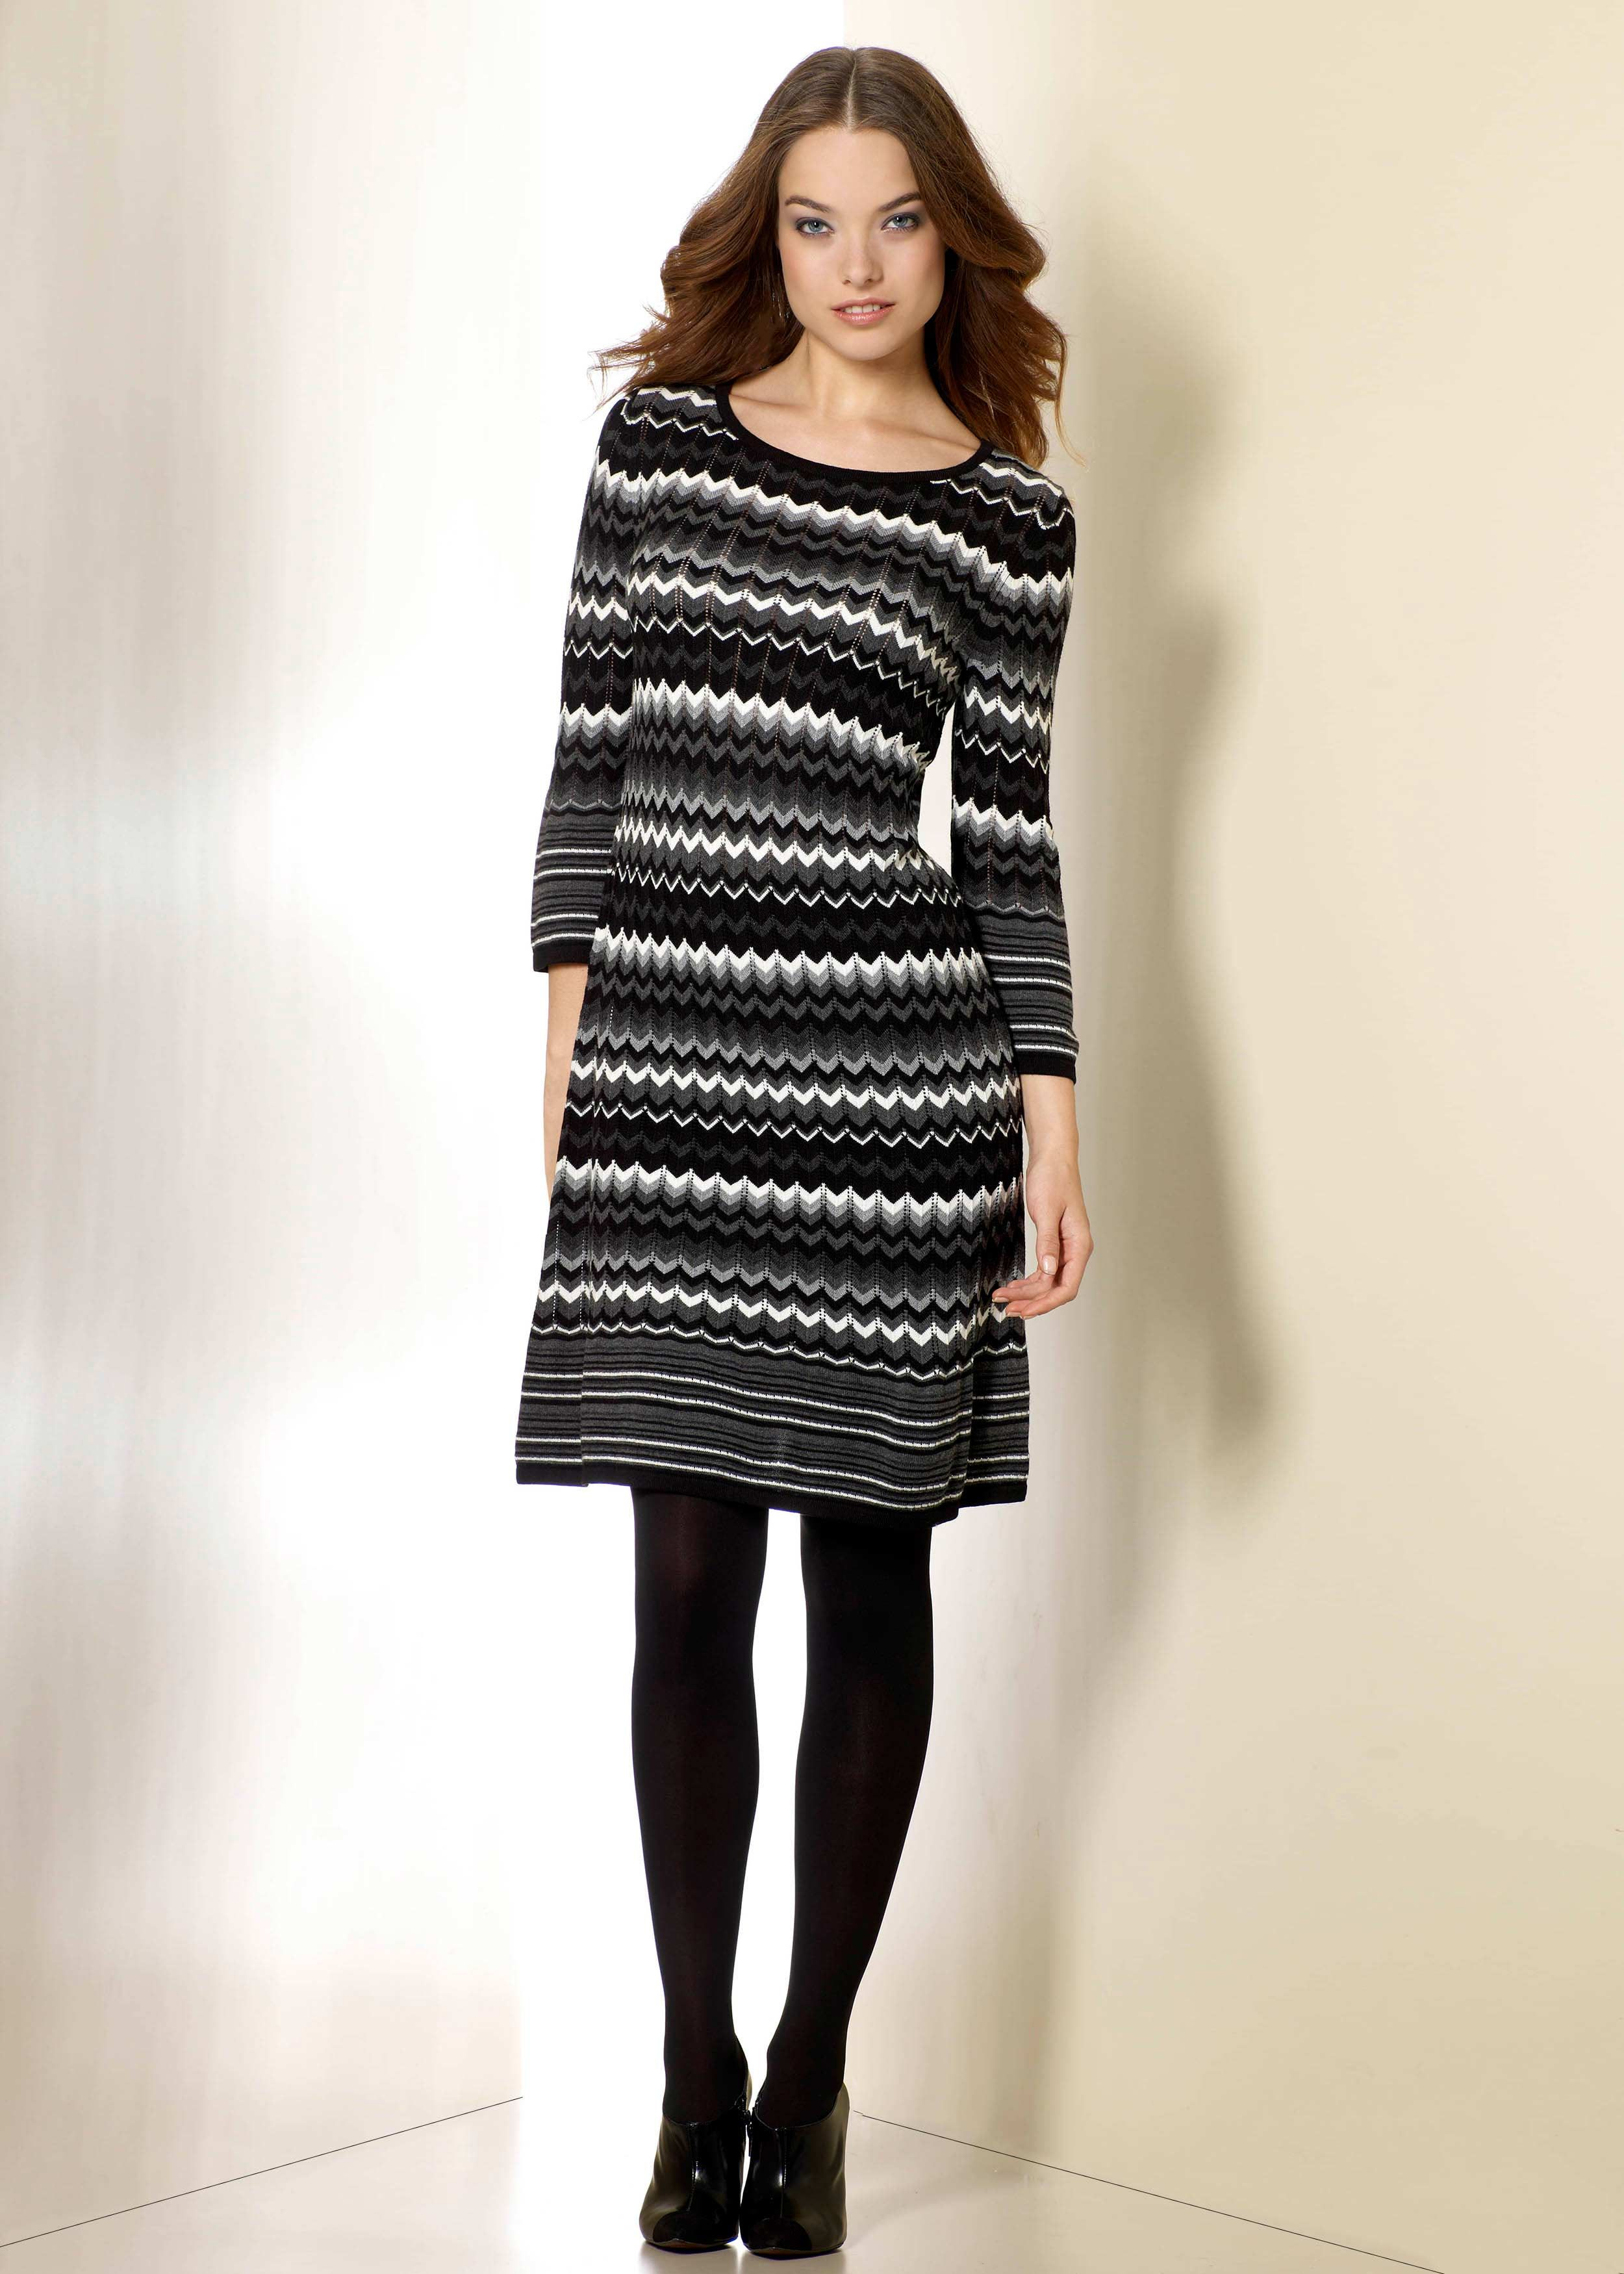 Zig Zag Sweater Dress with Boots